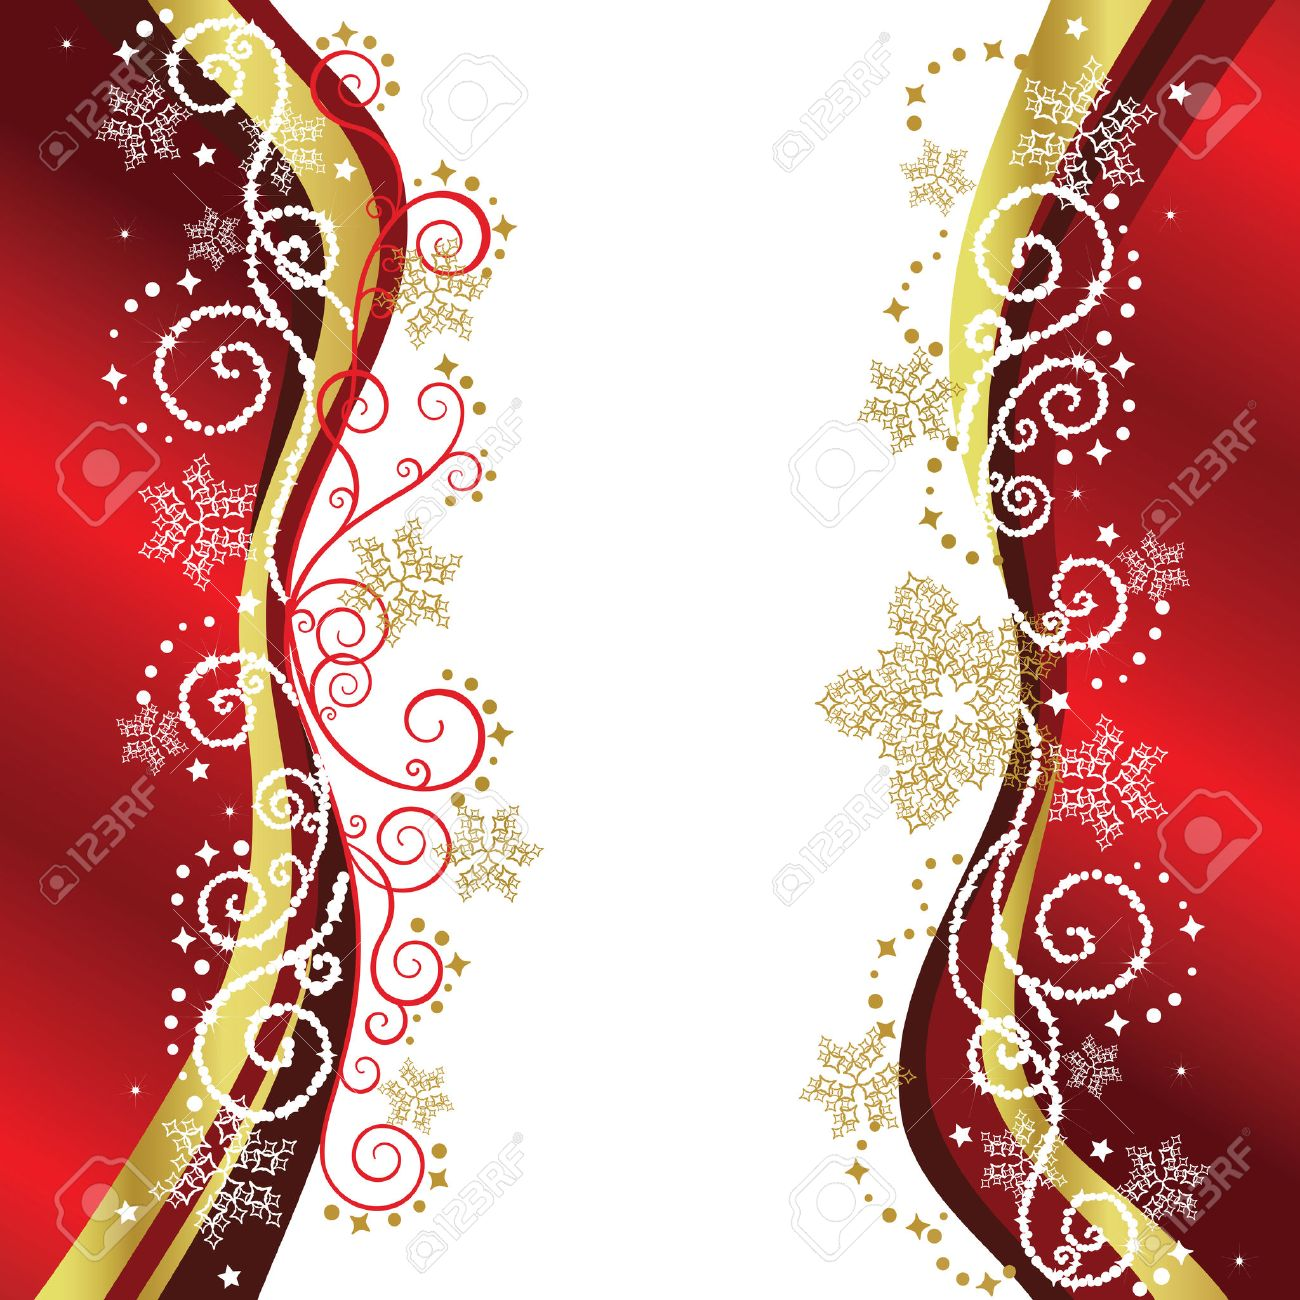 Red & Gold Christmas Border Designs Royalty Free Cliparts, Vectors ...